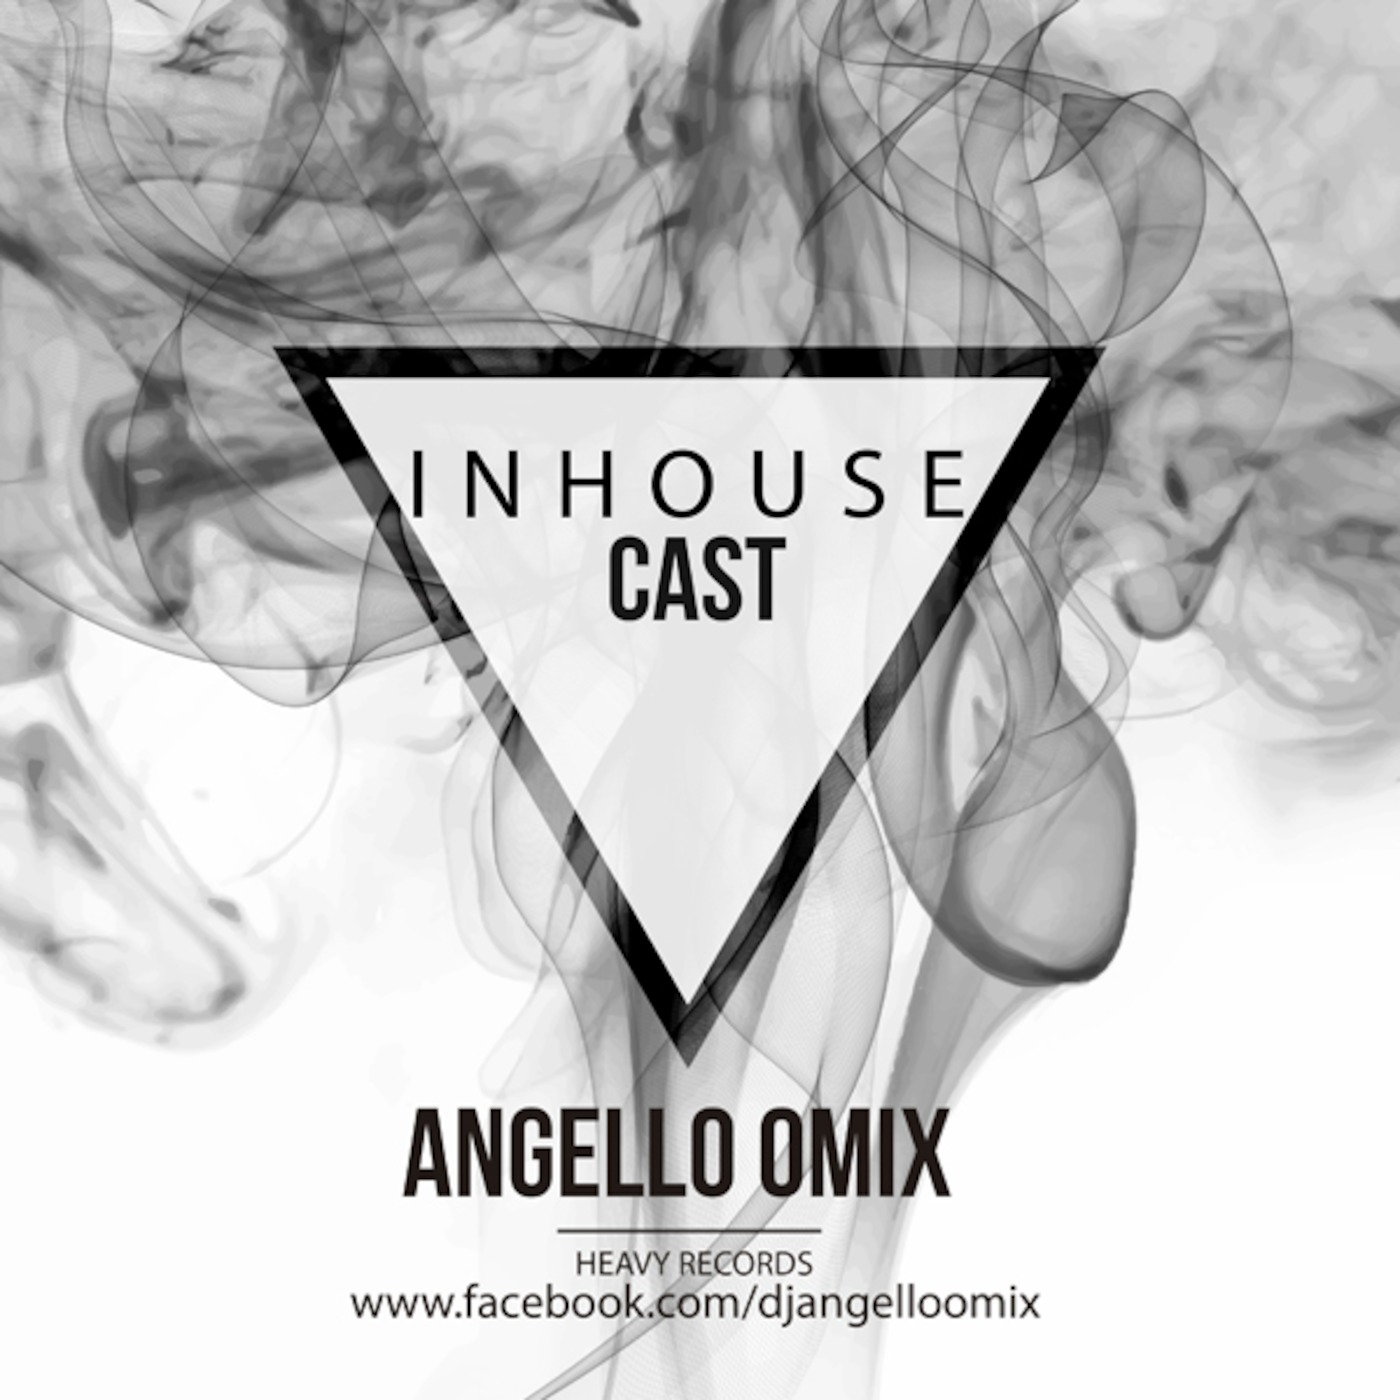 InHouse Cast mixed by Angello Omix